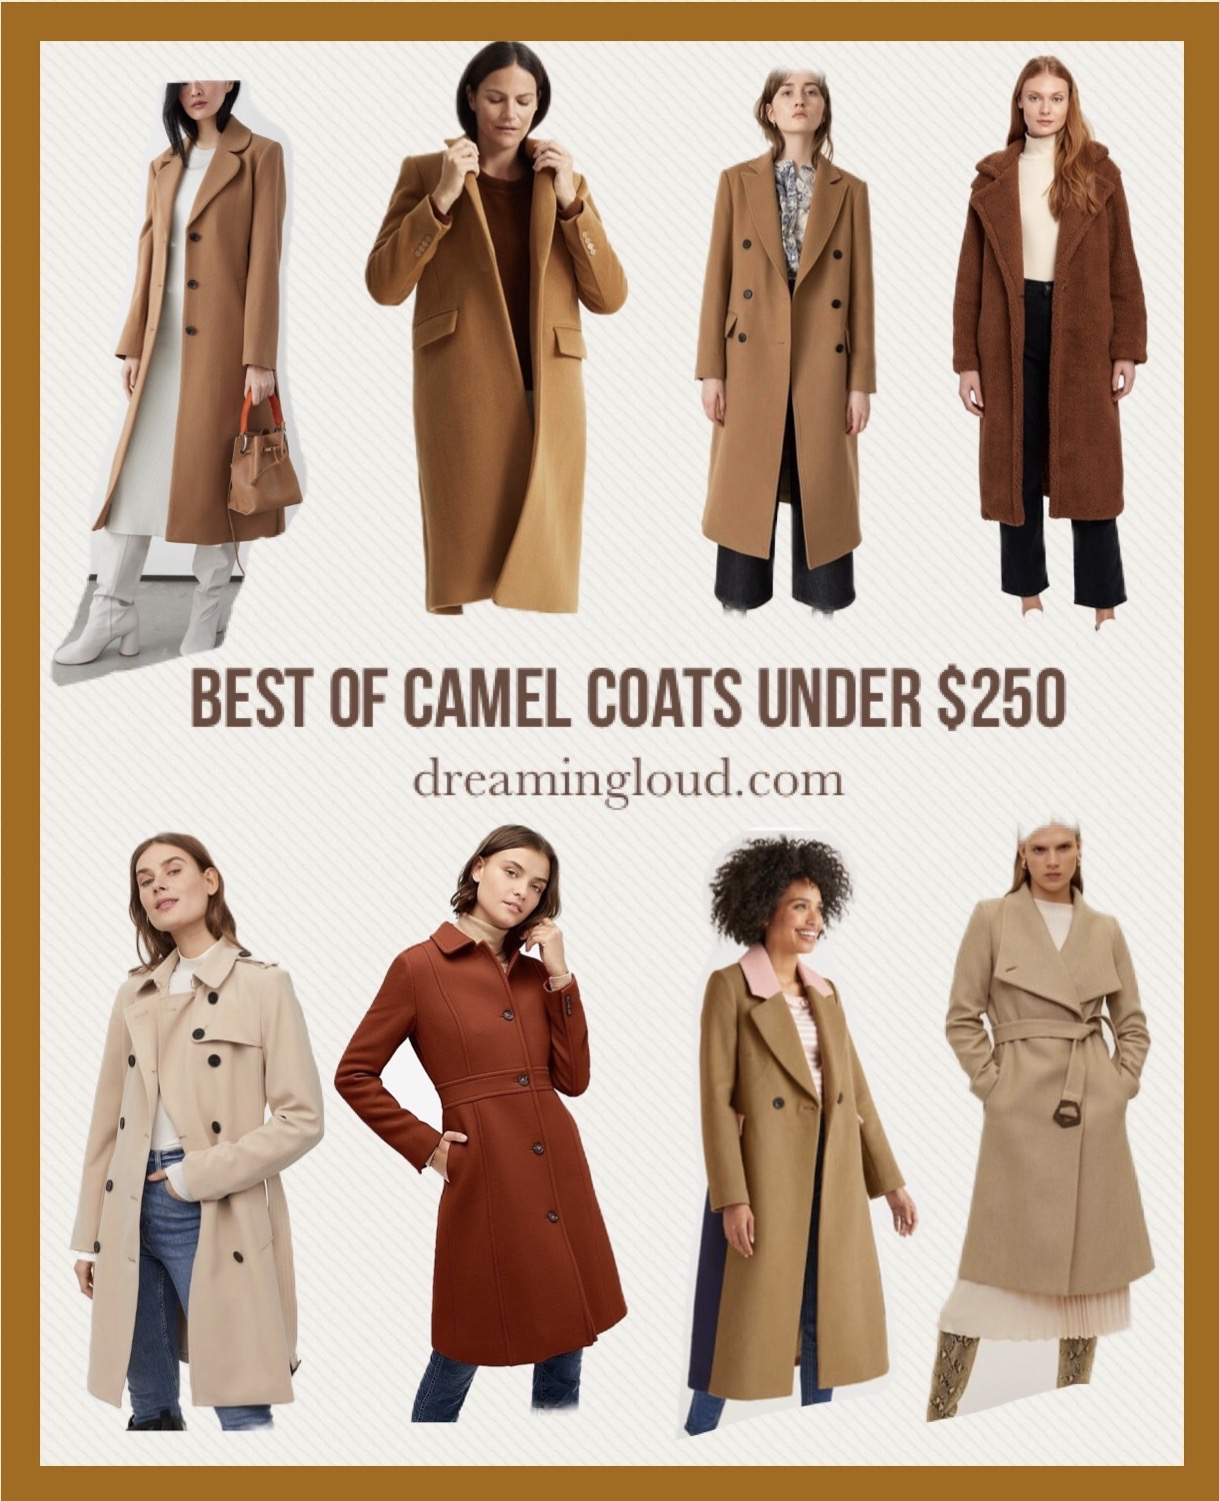 Camel Coat Outfits for Work styled by top US modest fashion blog, Dreaming Loud sharing Best Camel Coats under $250